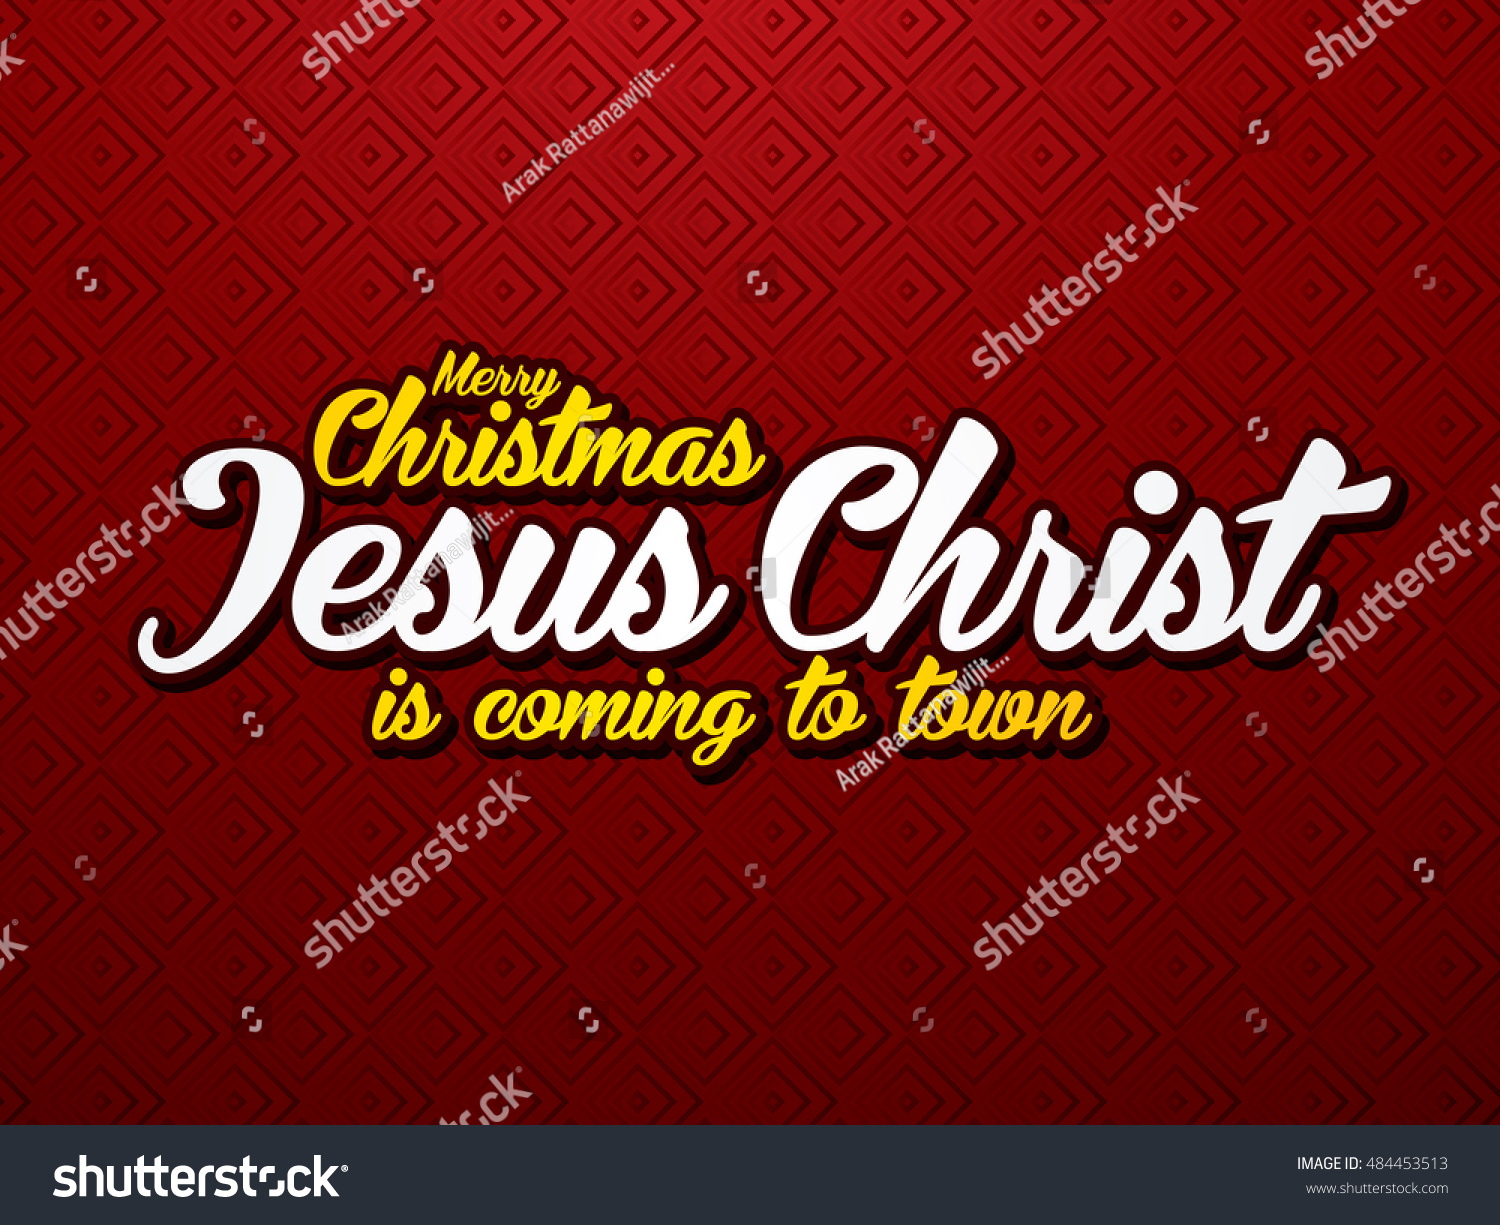 Merry Christmas Jesus Christ Coming Town Stock Vector (Royalty Free ...